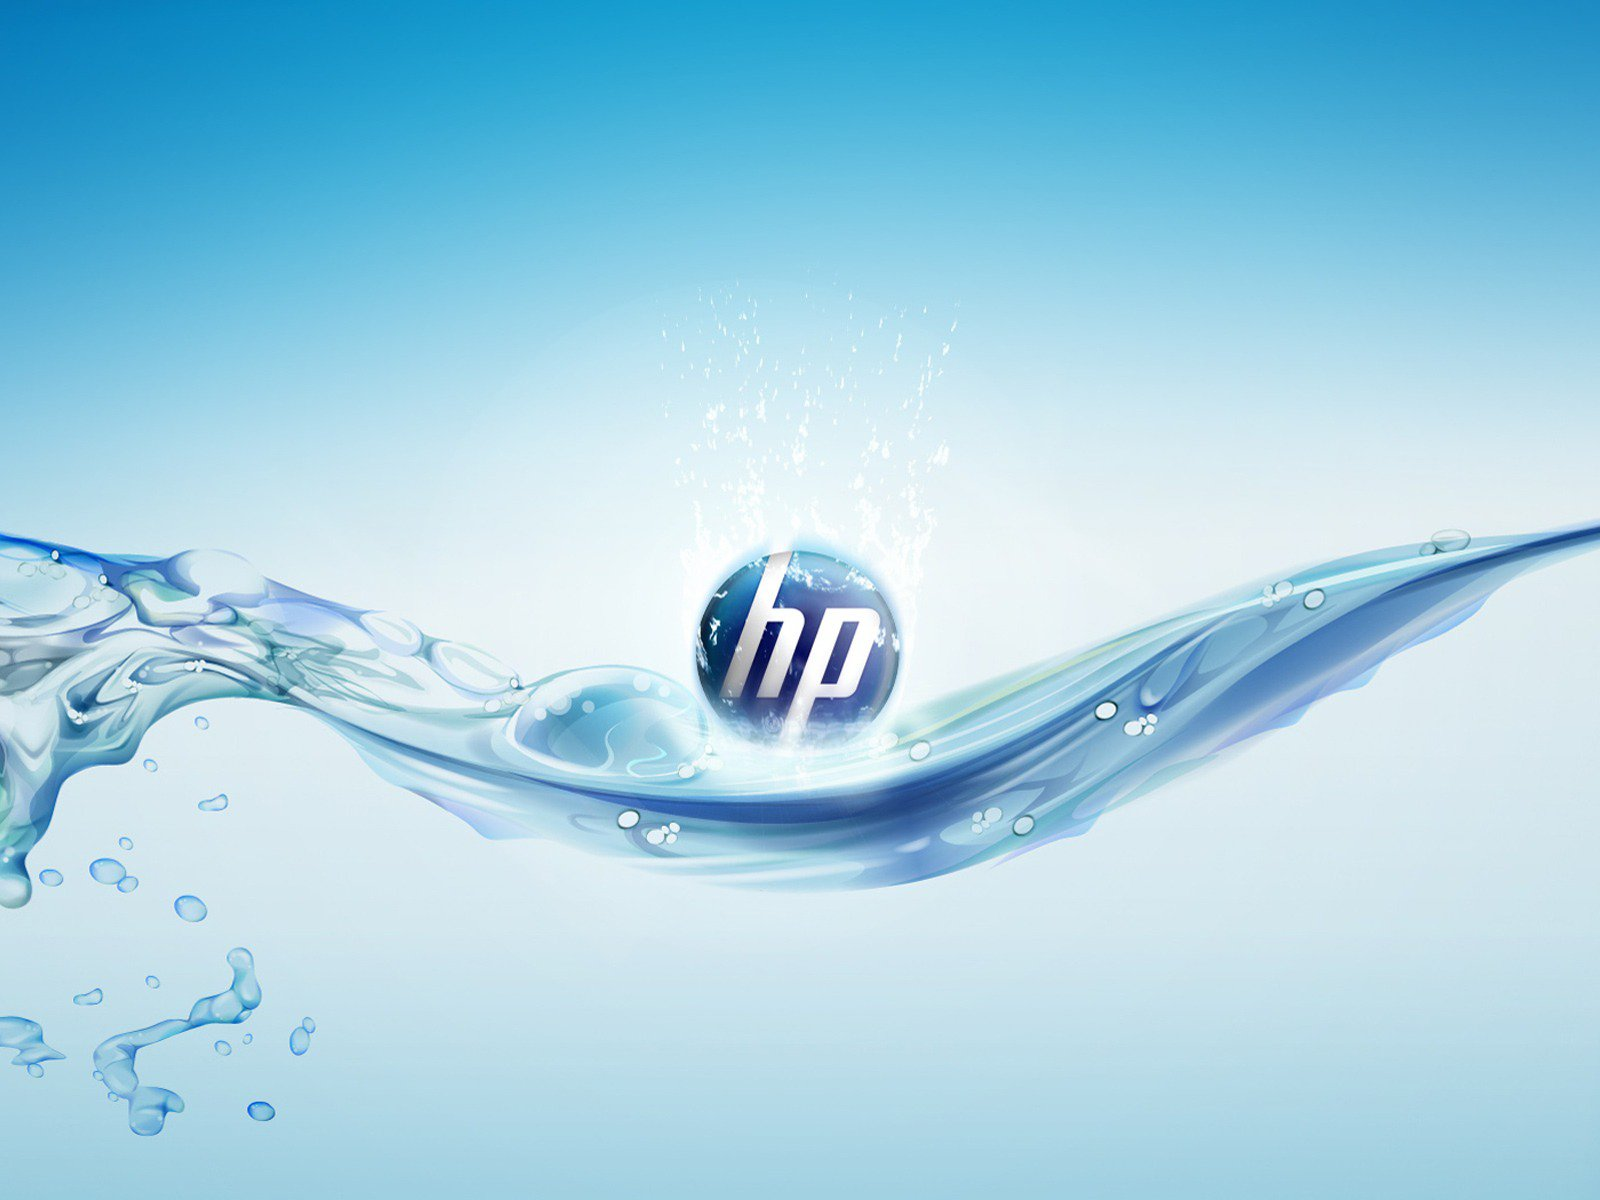 hp aqua splash logo clean blue high definition computer desktop